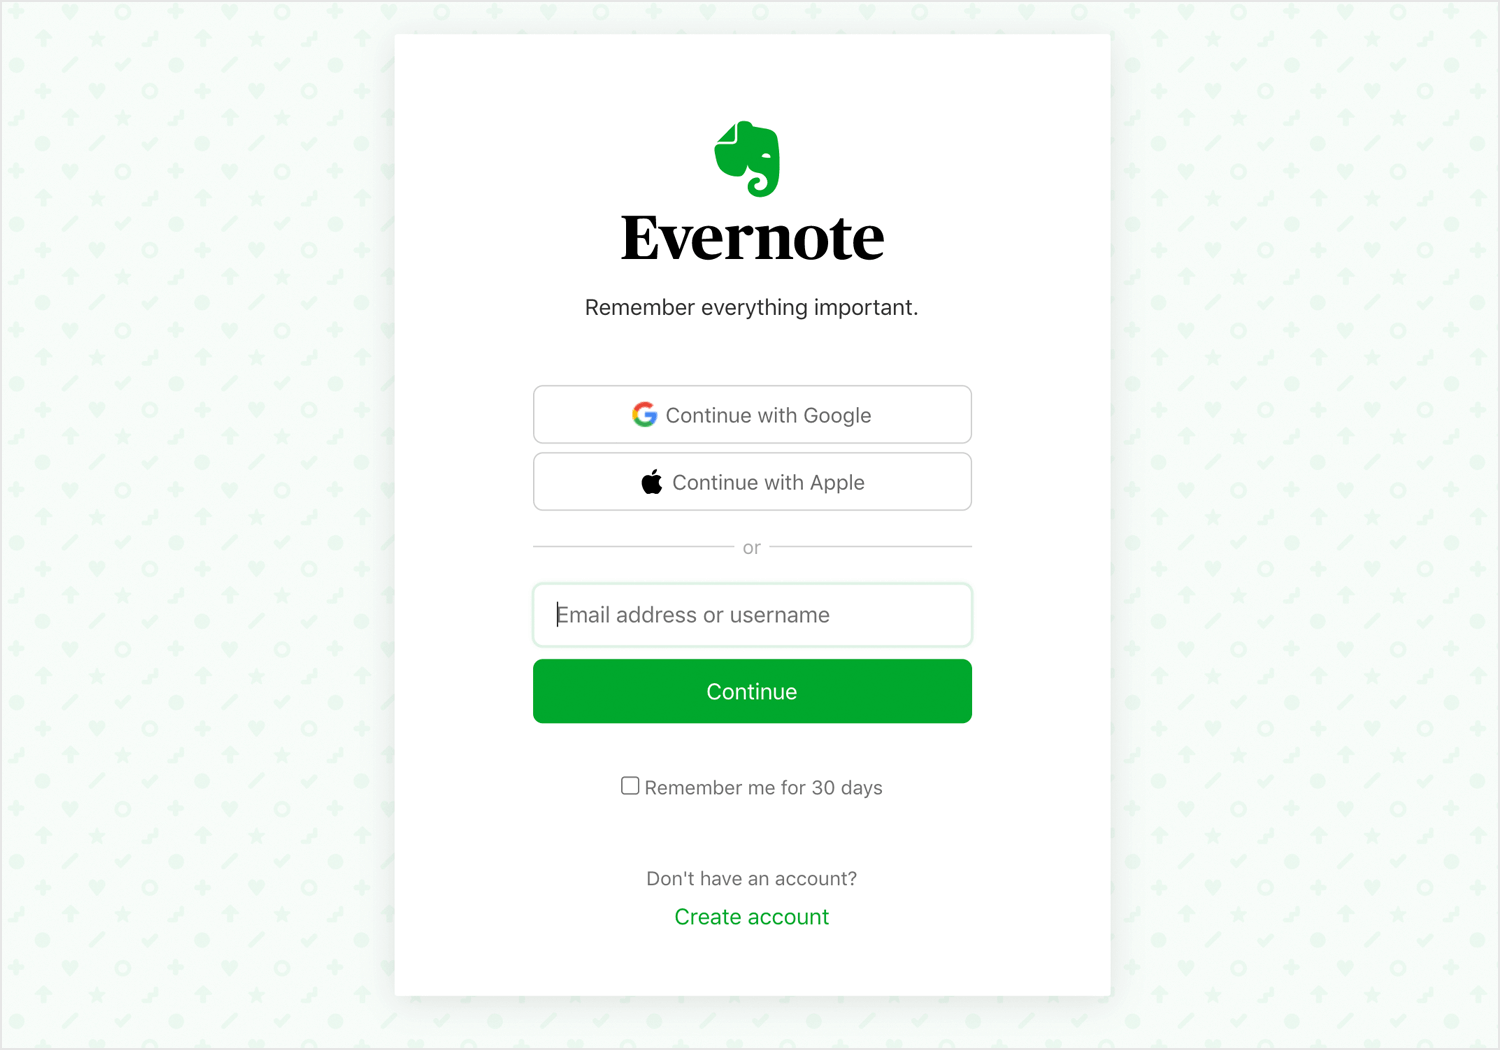 evernote login form page